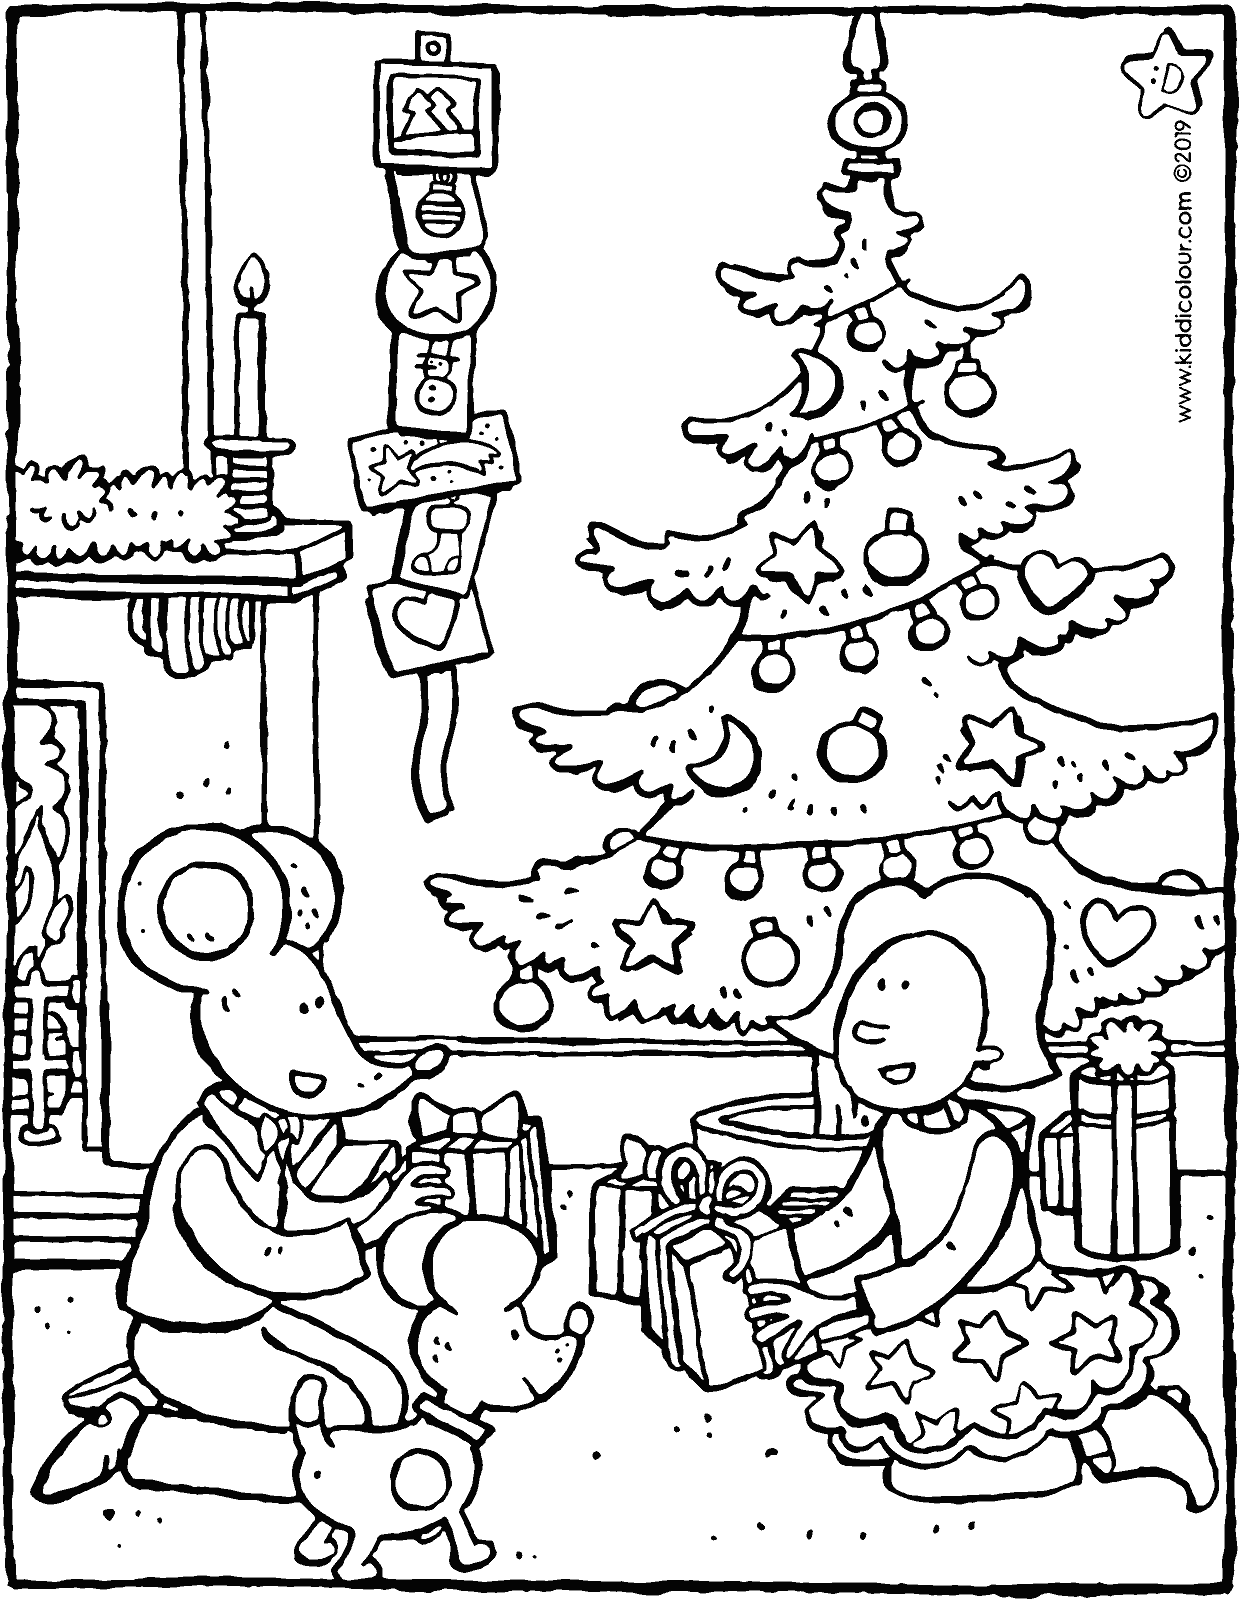 Emma and Thomas give each other a Christmas present colouring page drawing picture 01V